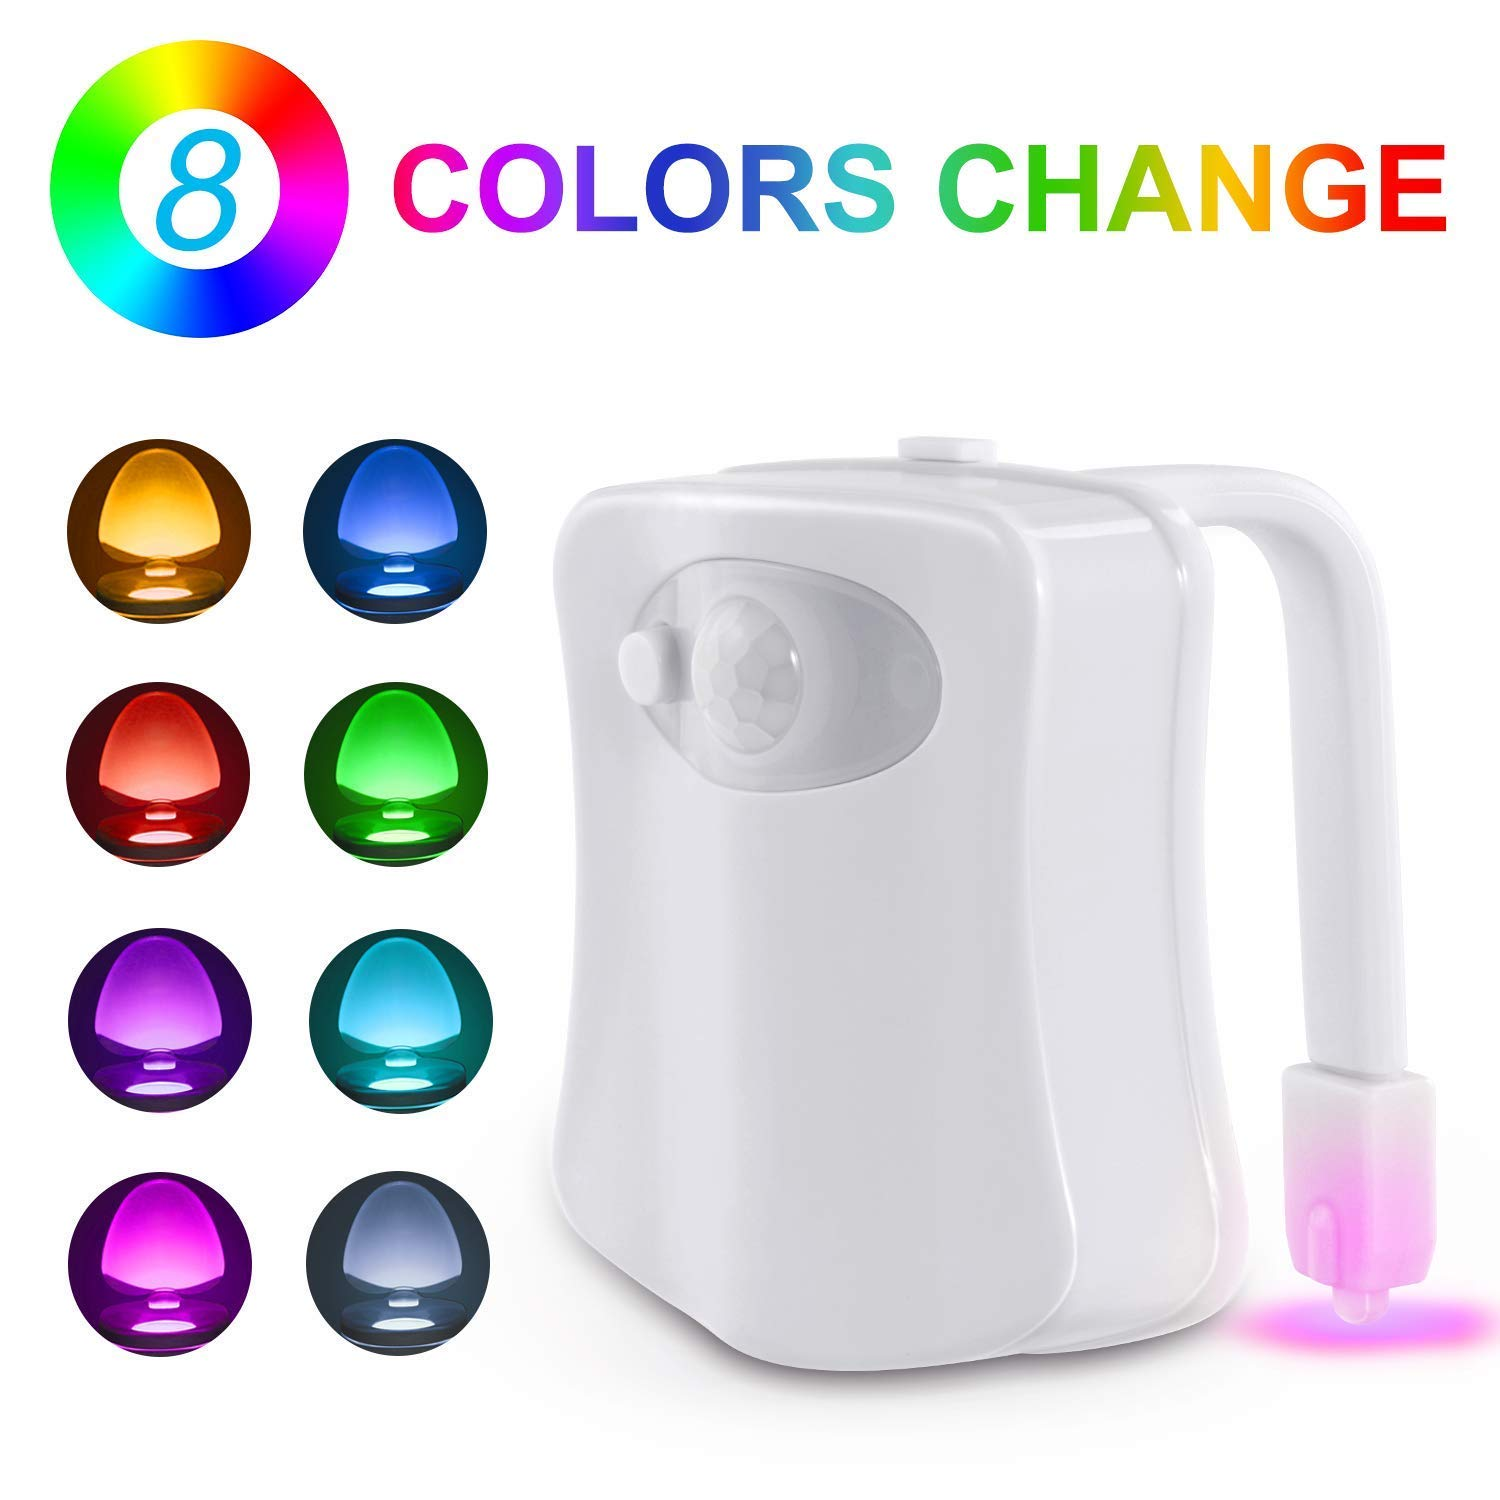 Firya Smart PIR Toilet Seat Night Light Motion Sensor LED Two Modes With 8 Colors Changing For Toilet Bowl Bathroom WC Lamp